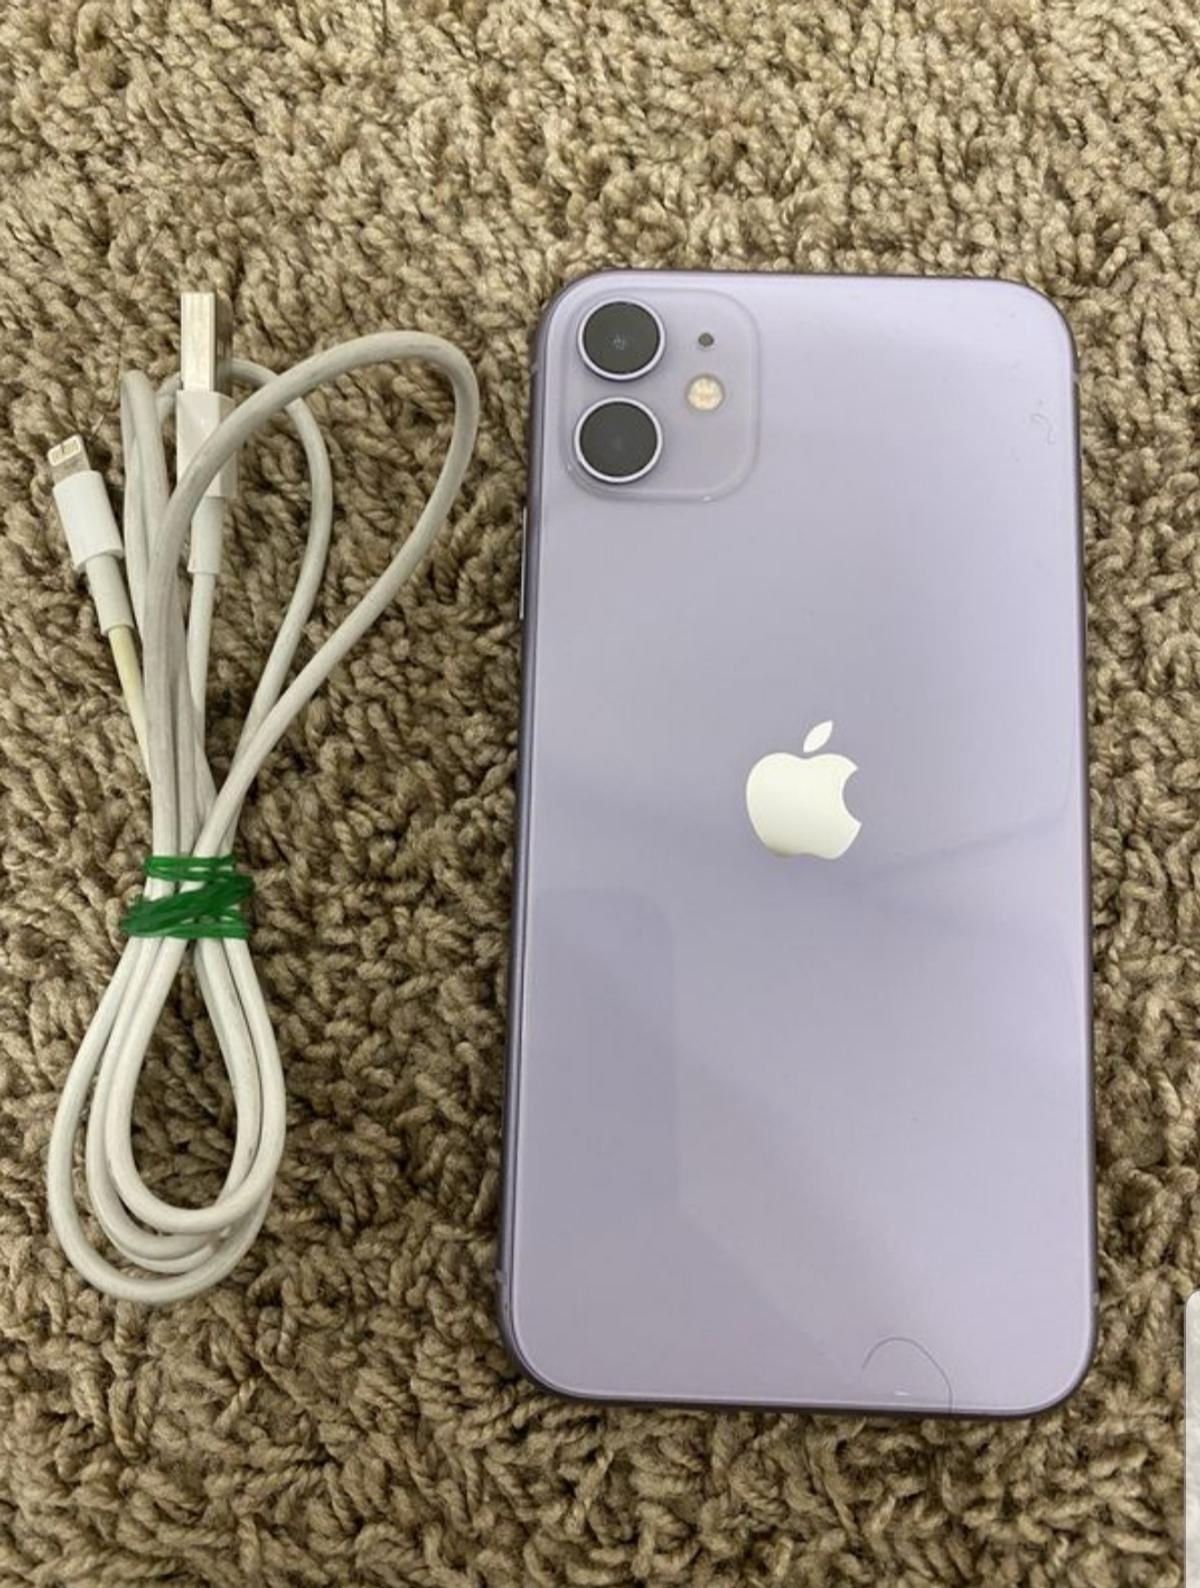 Used iPhone 11 512gb with only charger Battery Health: Good Used for only a month, neat as new Shipping is also allowed. Payment: Cashapp, Zelle & Venmo